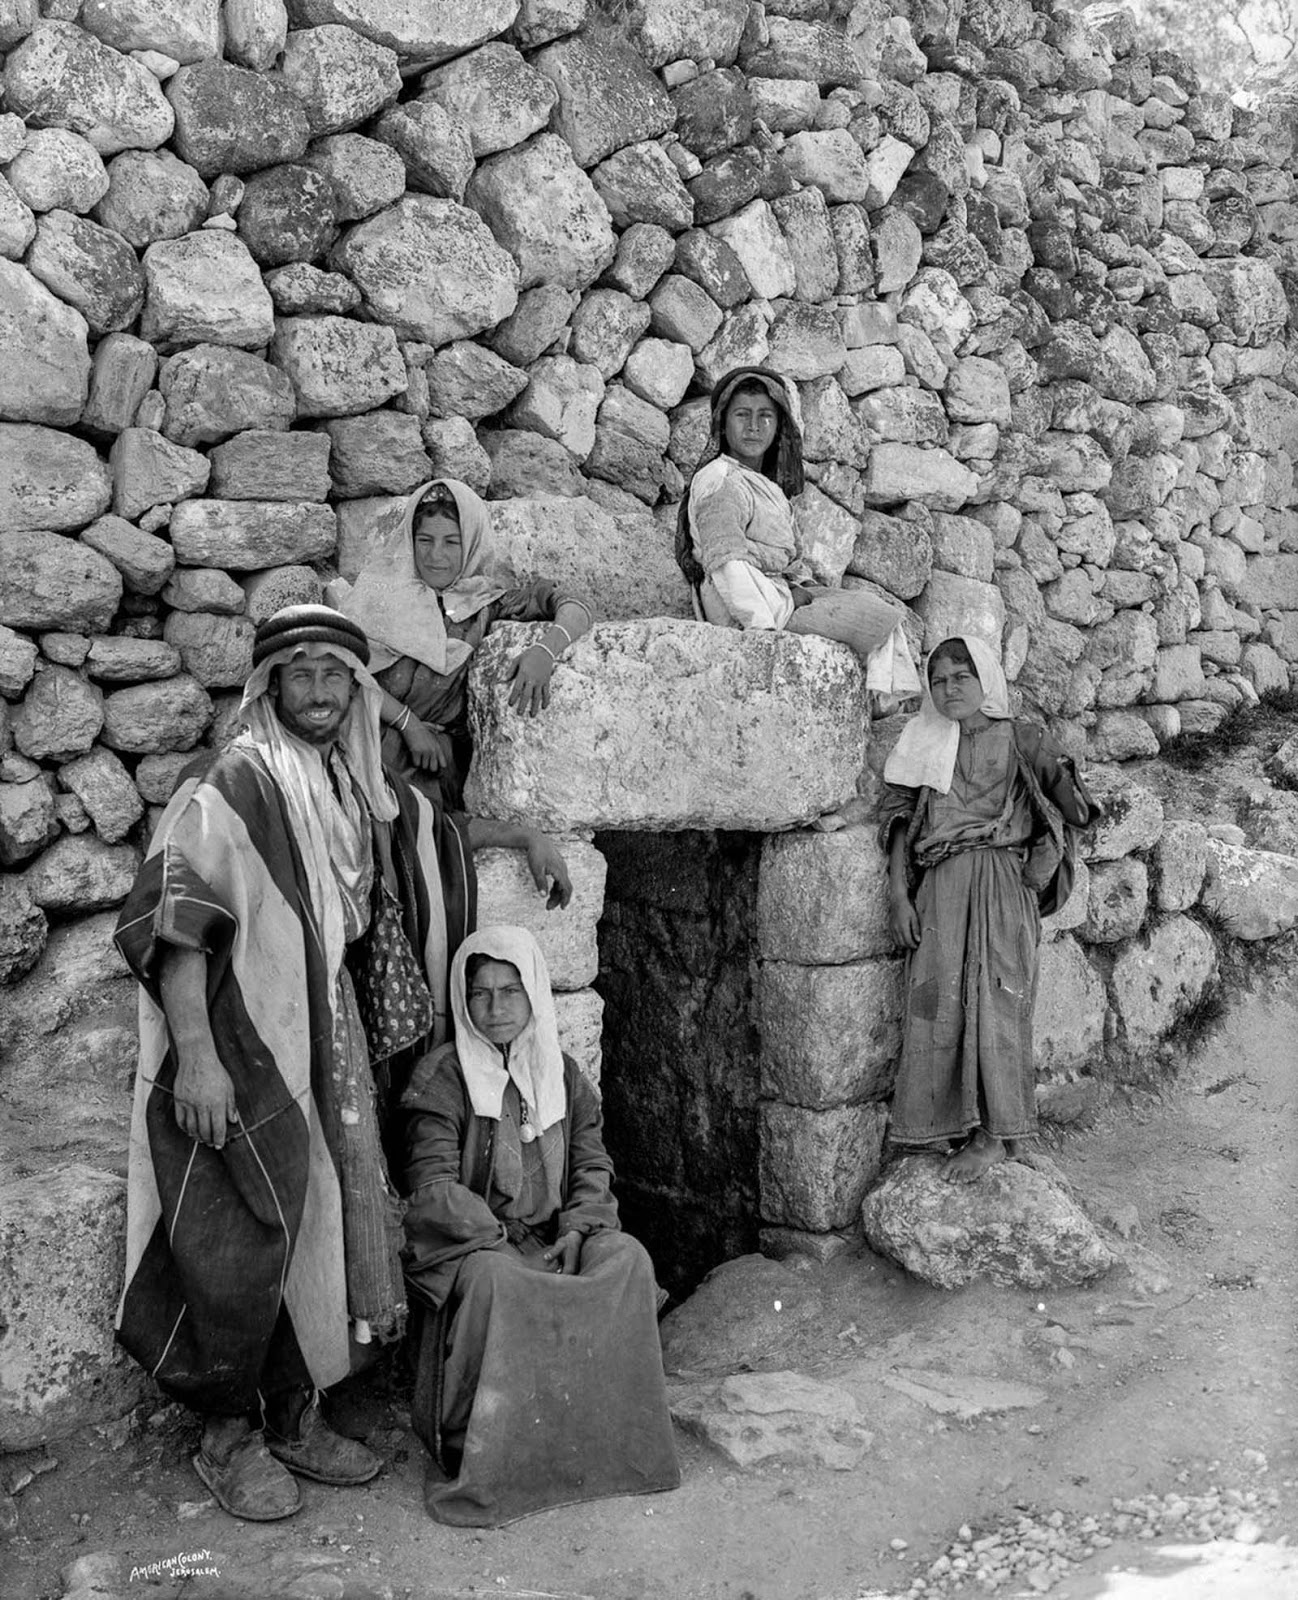 Bedouins at the Tomb of Lazarus near Jerusalem.